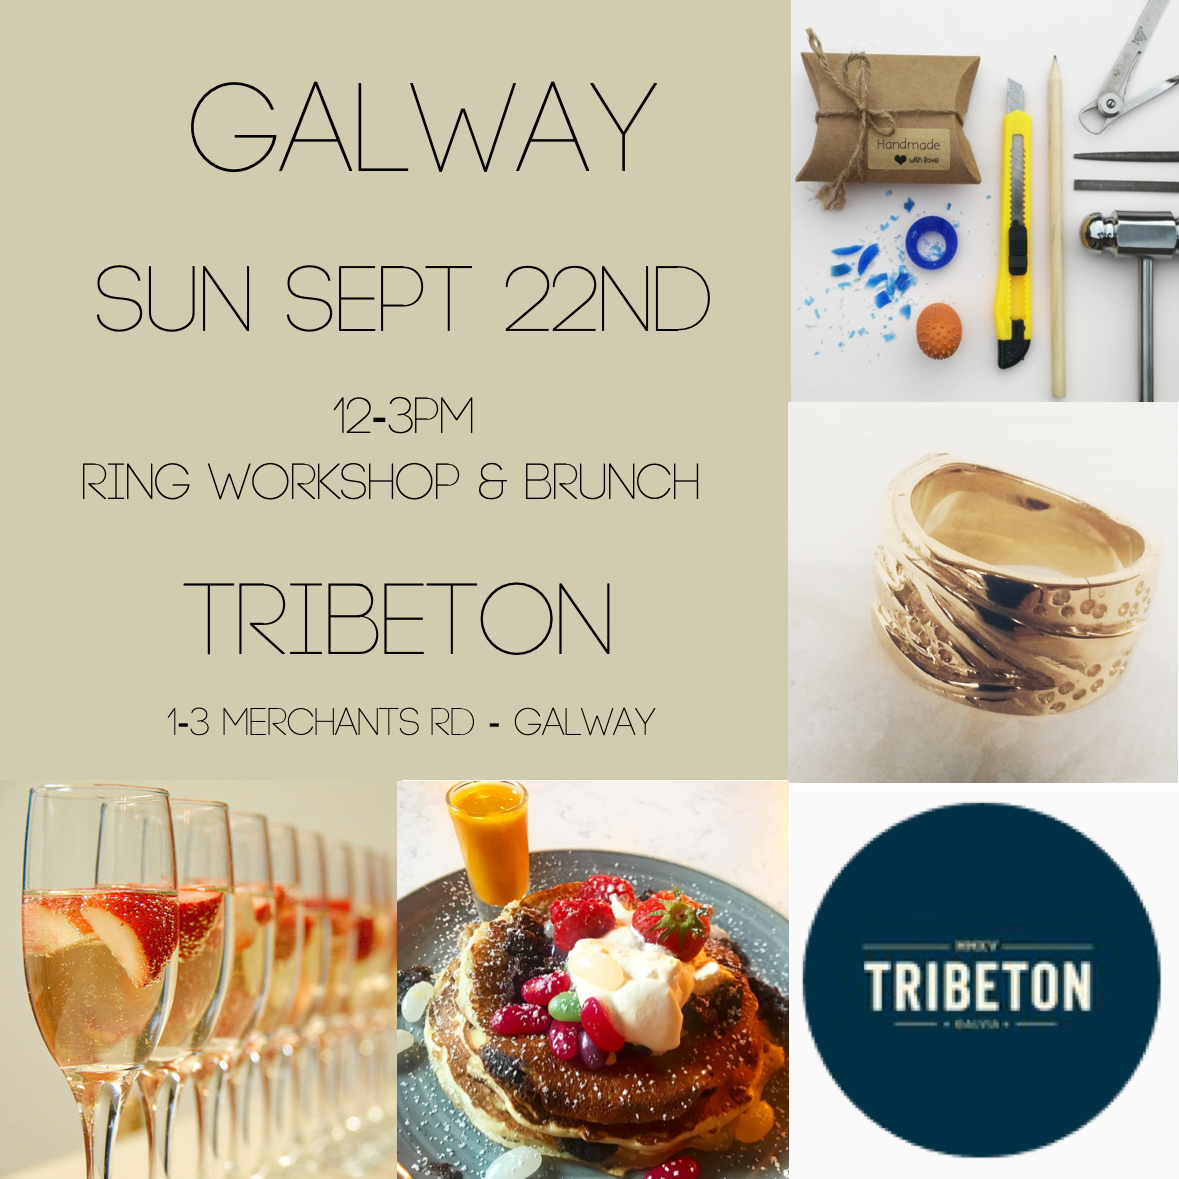 Galway 22nd Sept